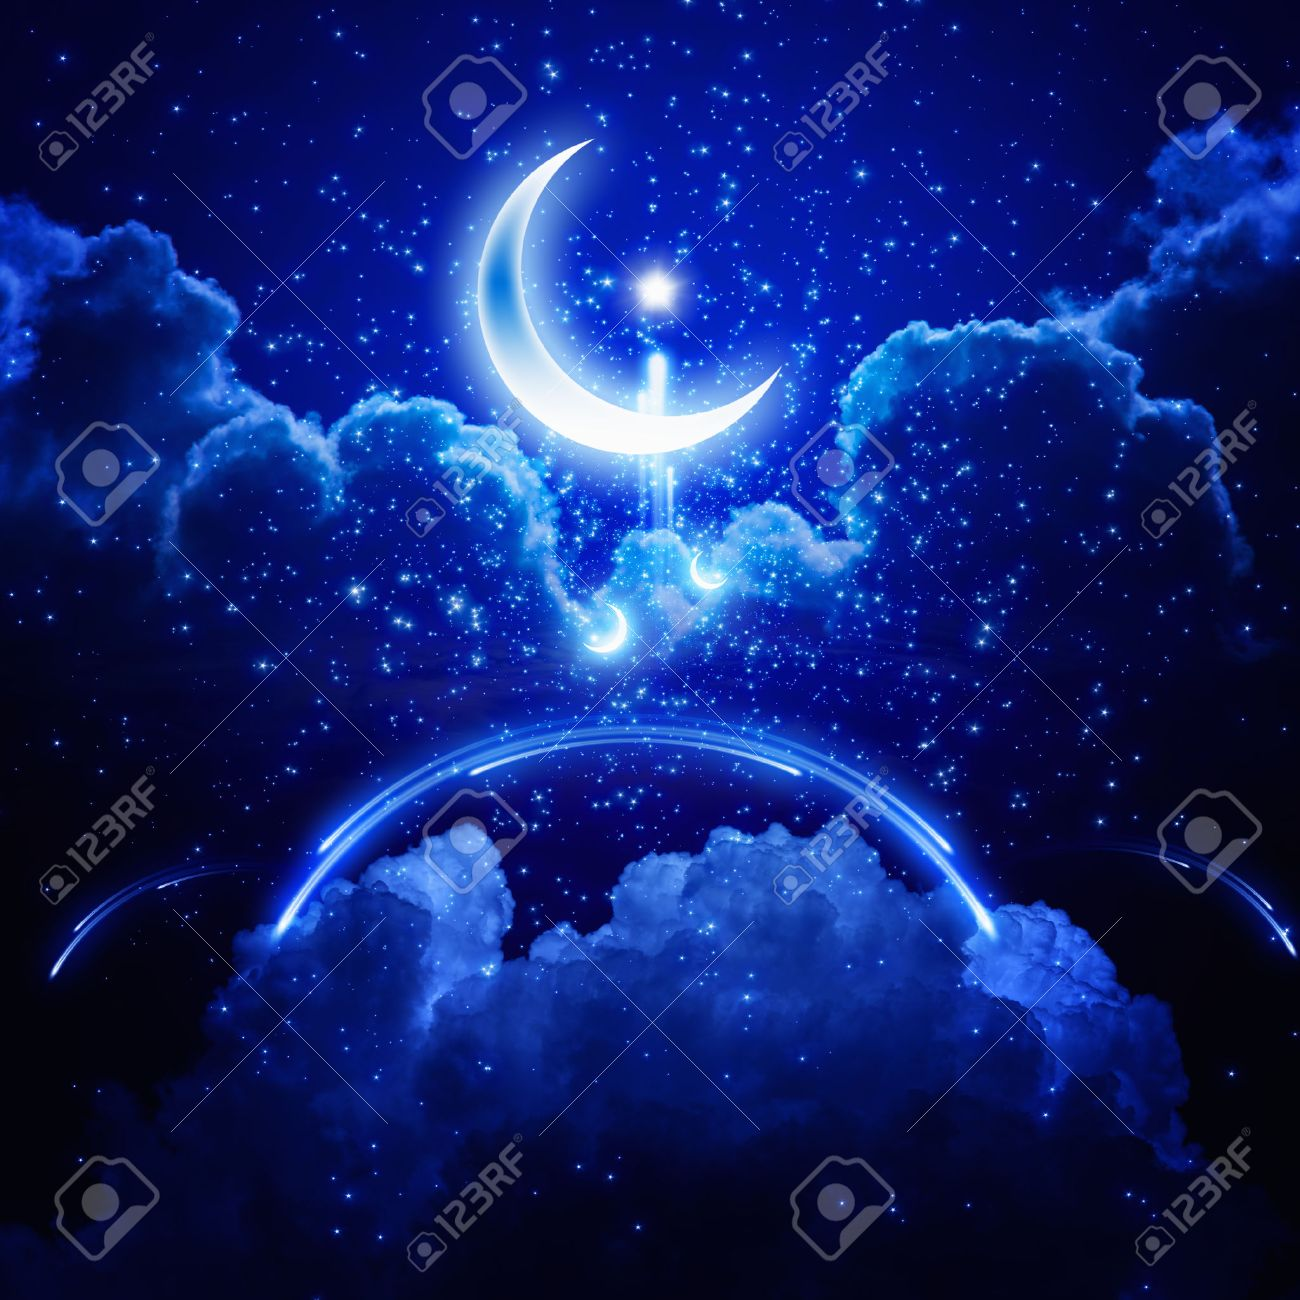 Ramadan background - shining moon and stars, holy month, abstract